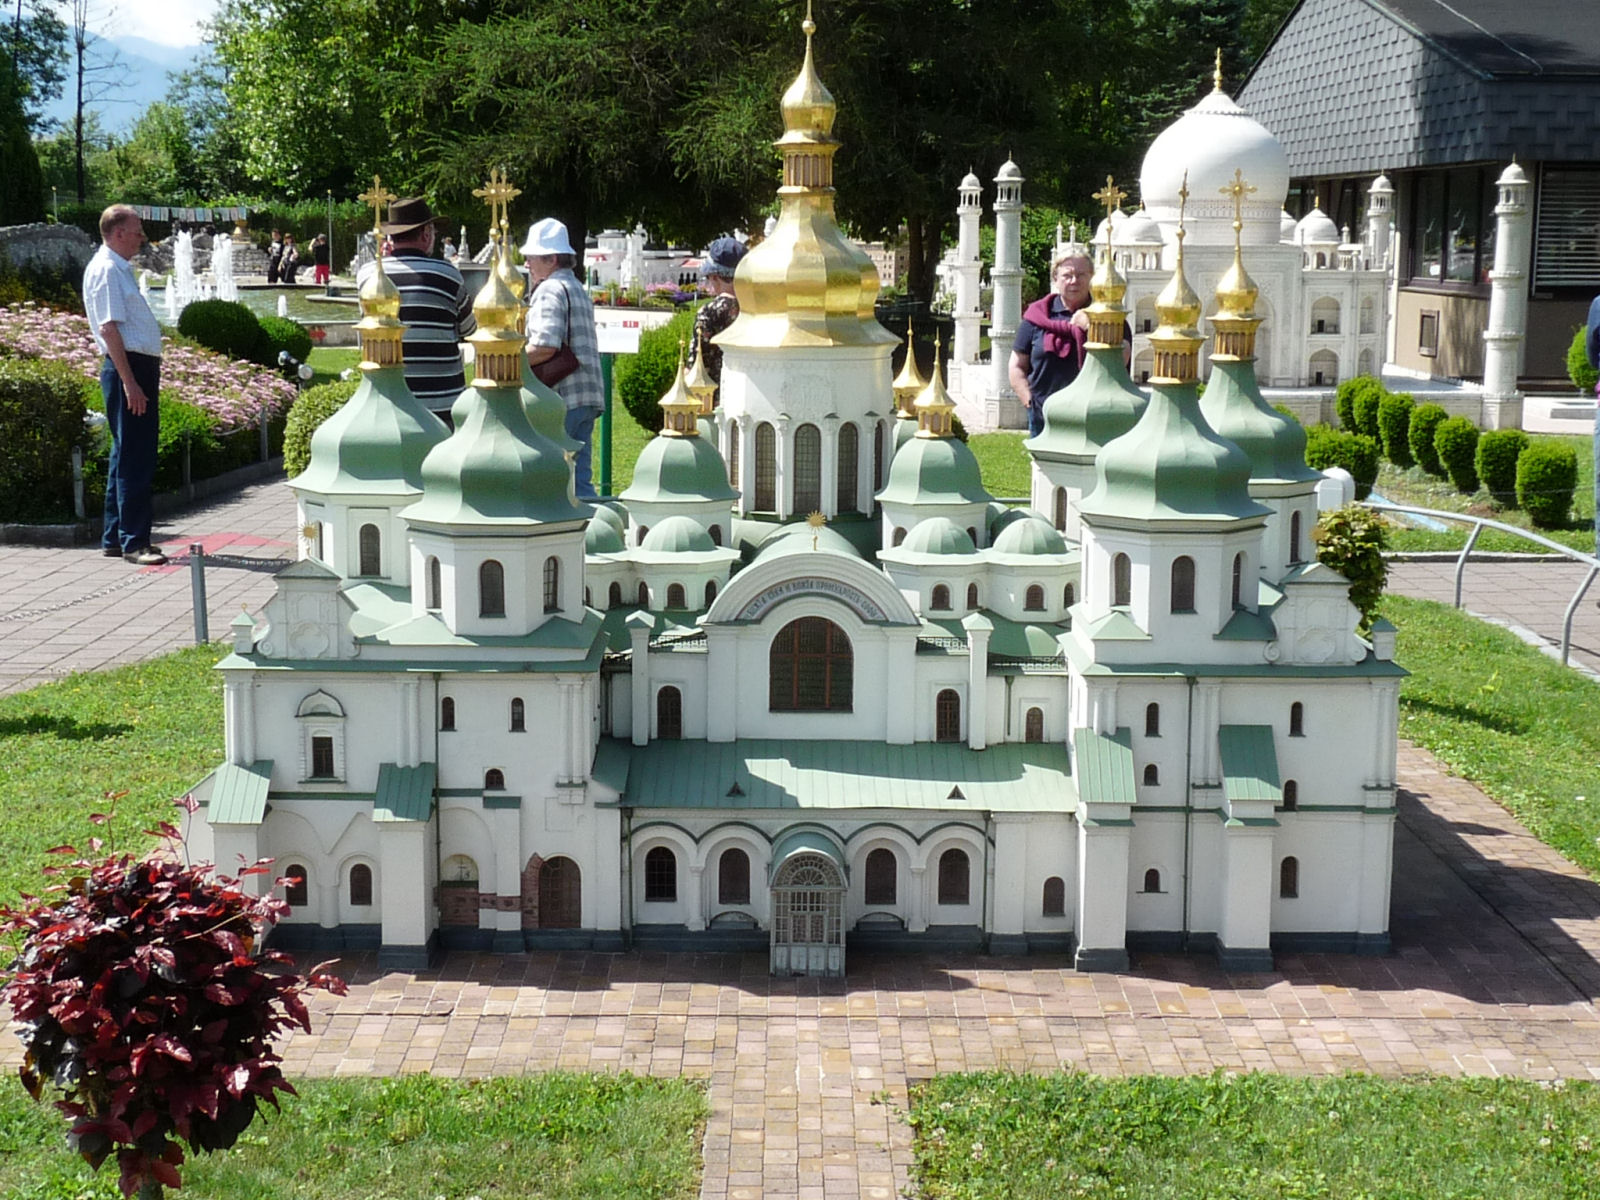 Model of the Kiev's Saint Sophia's Cathedral at Minimundus, Klagenfurt, Austria